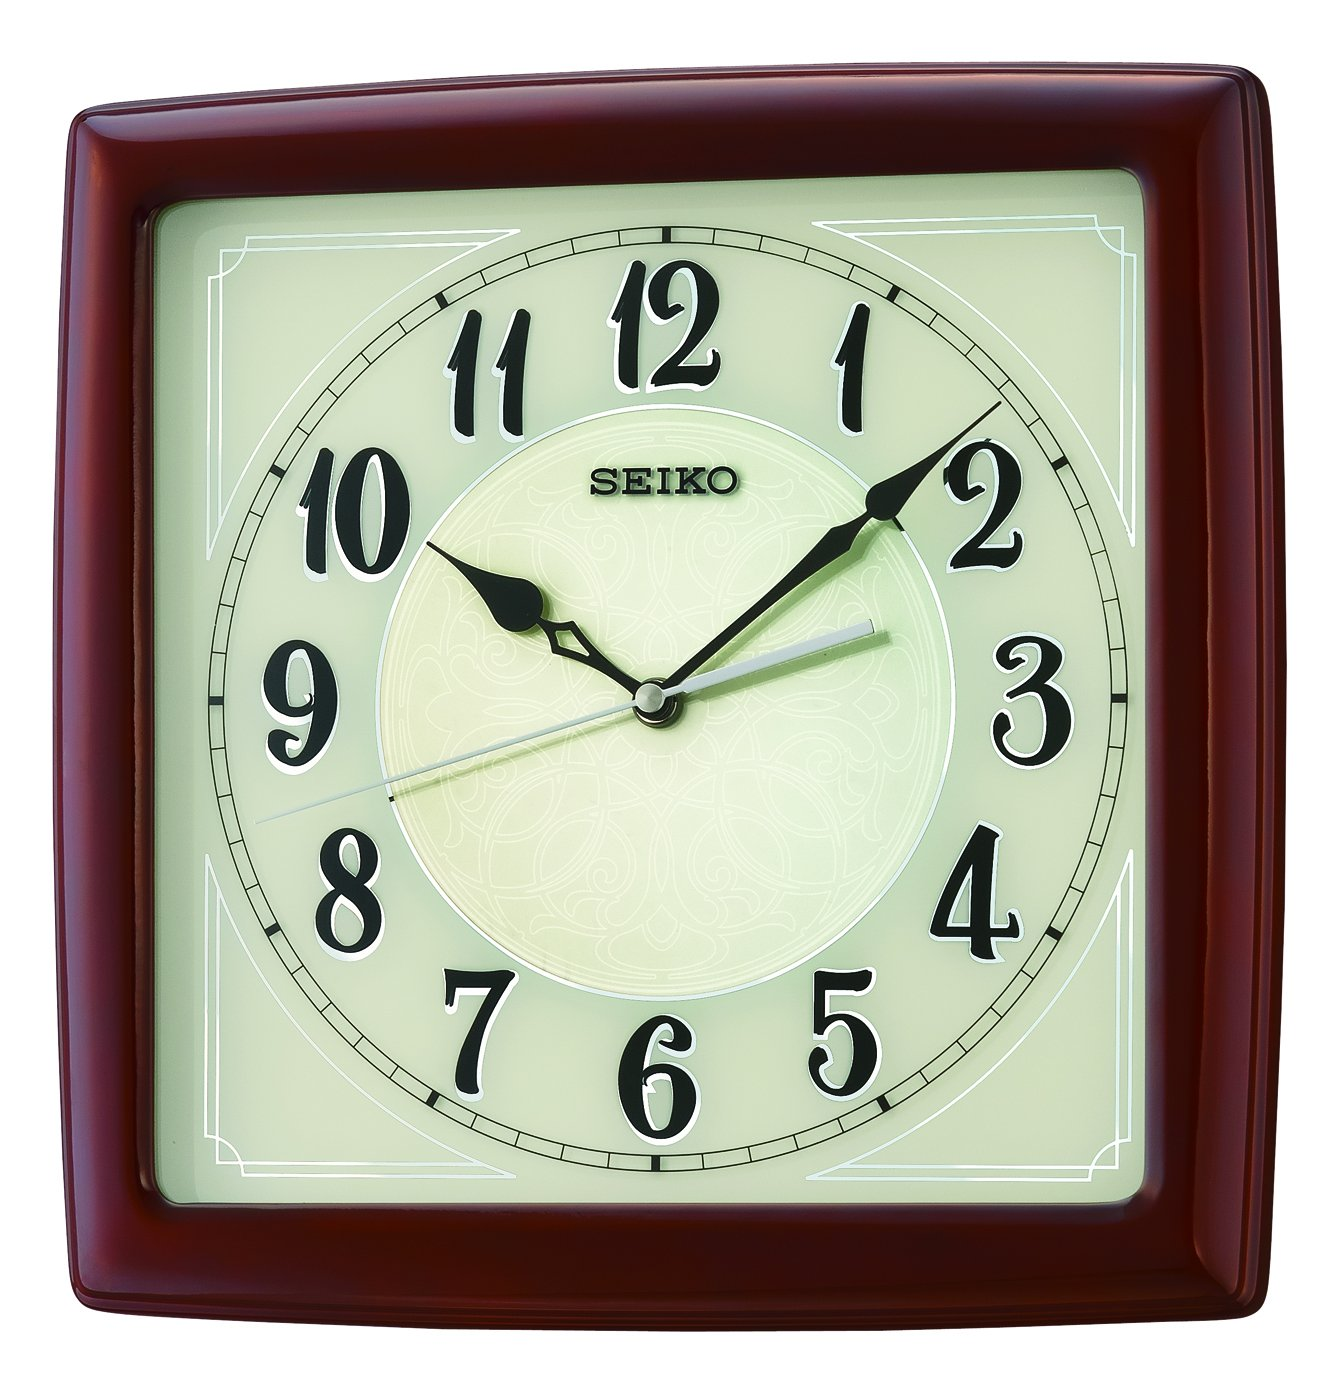 Seiko Dark Wooden Quartzbattery Square Wall Clock Cream Coloured